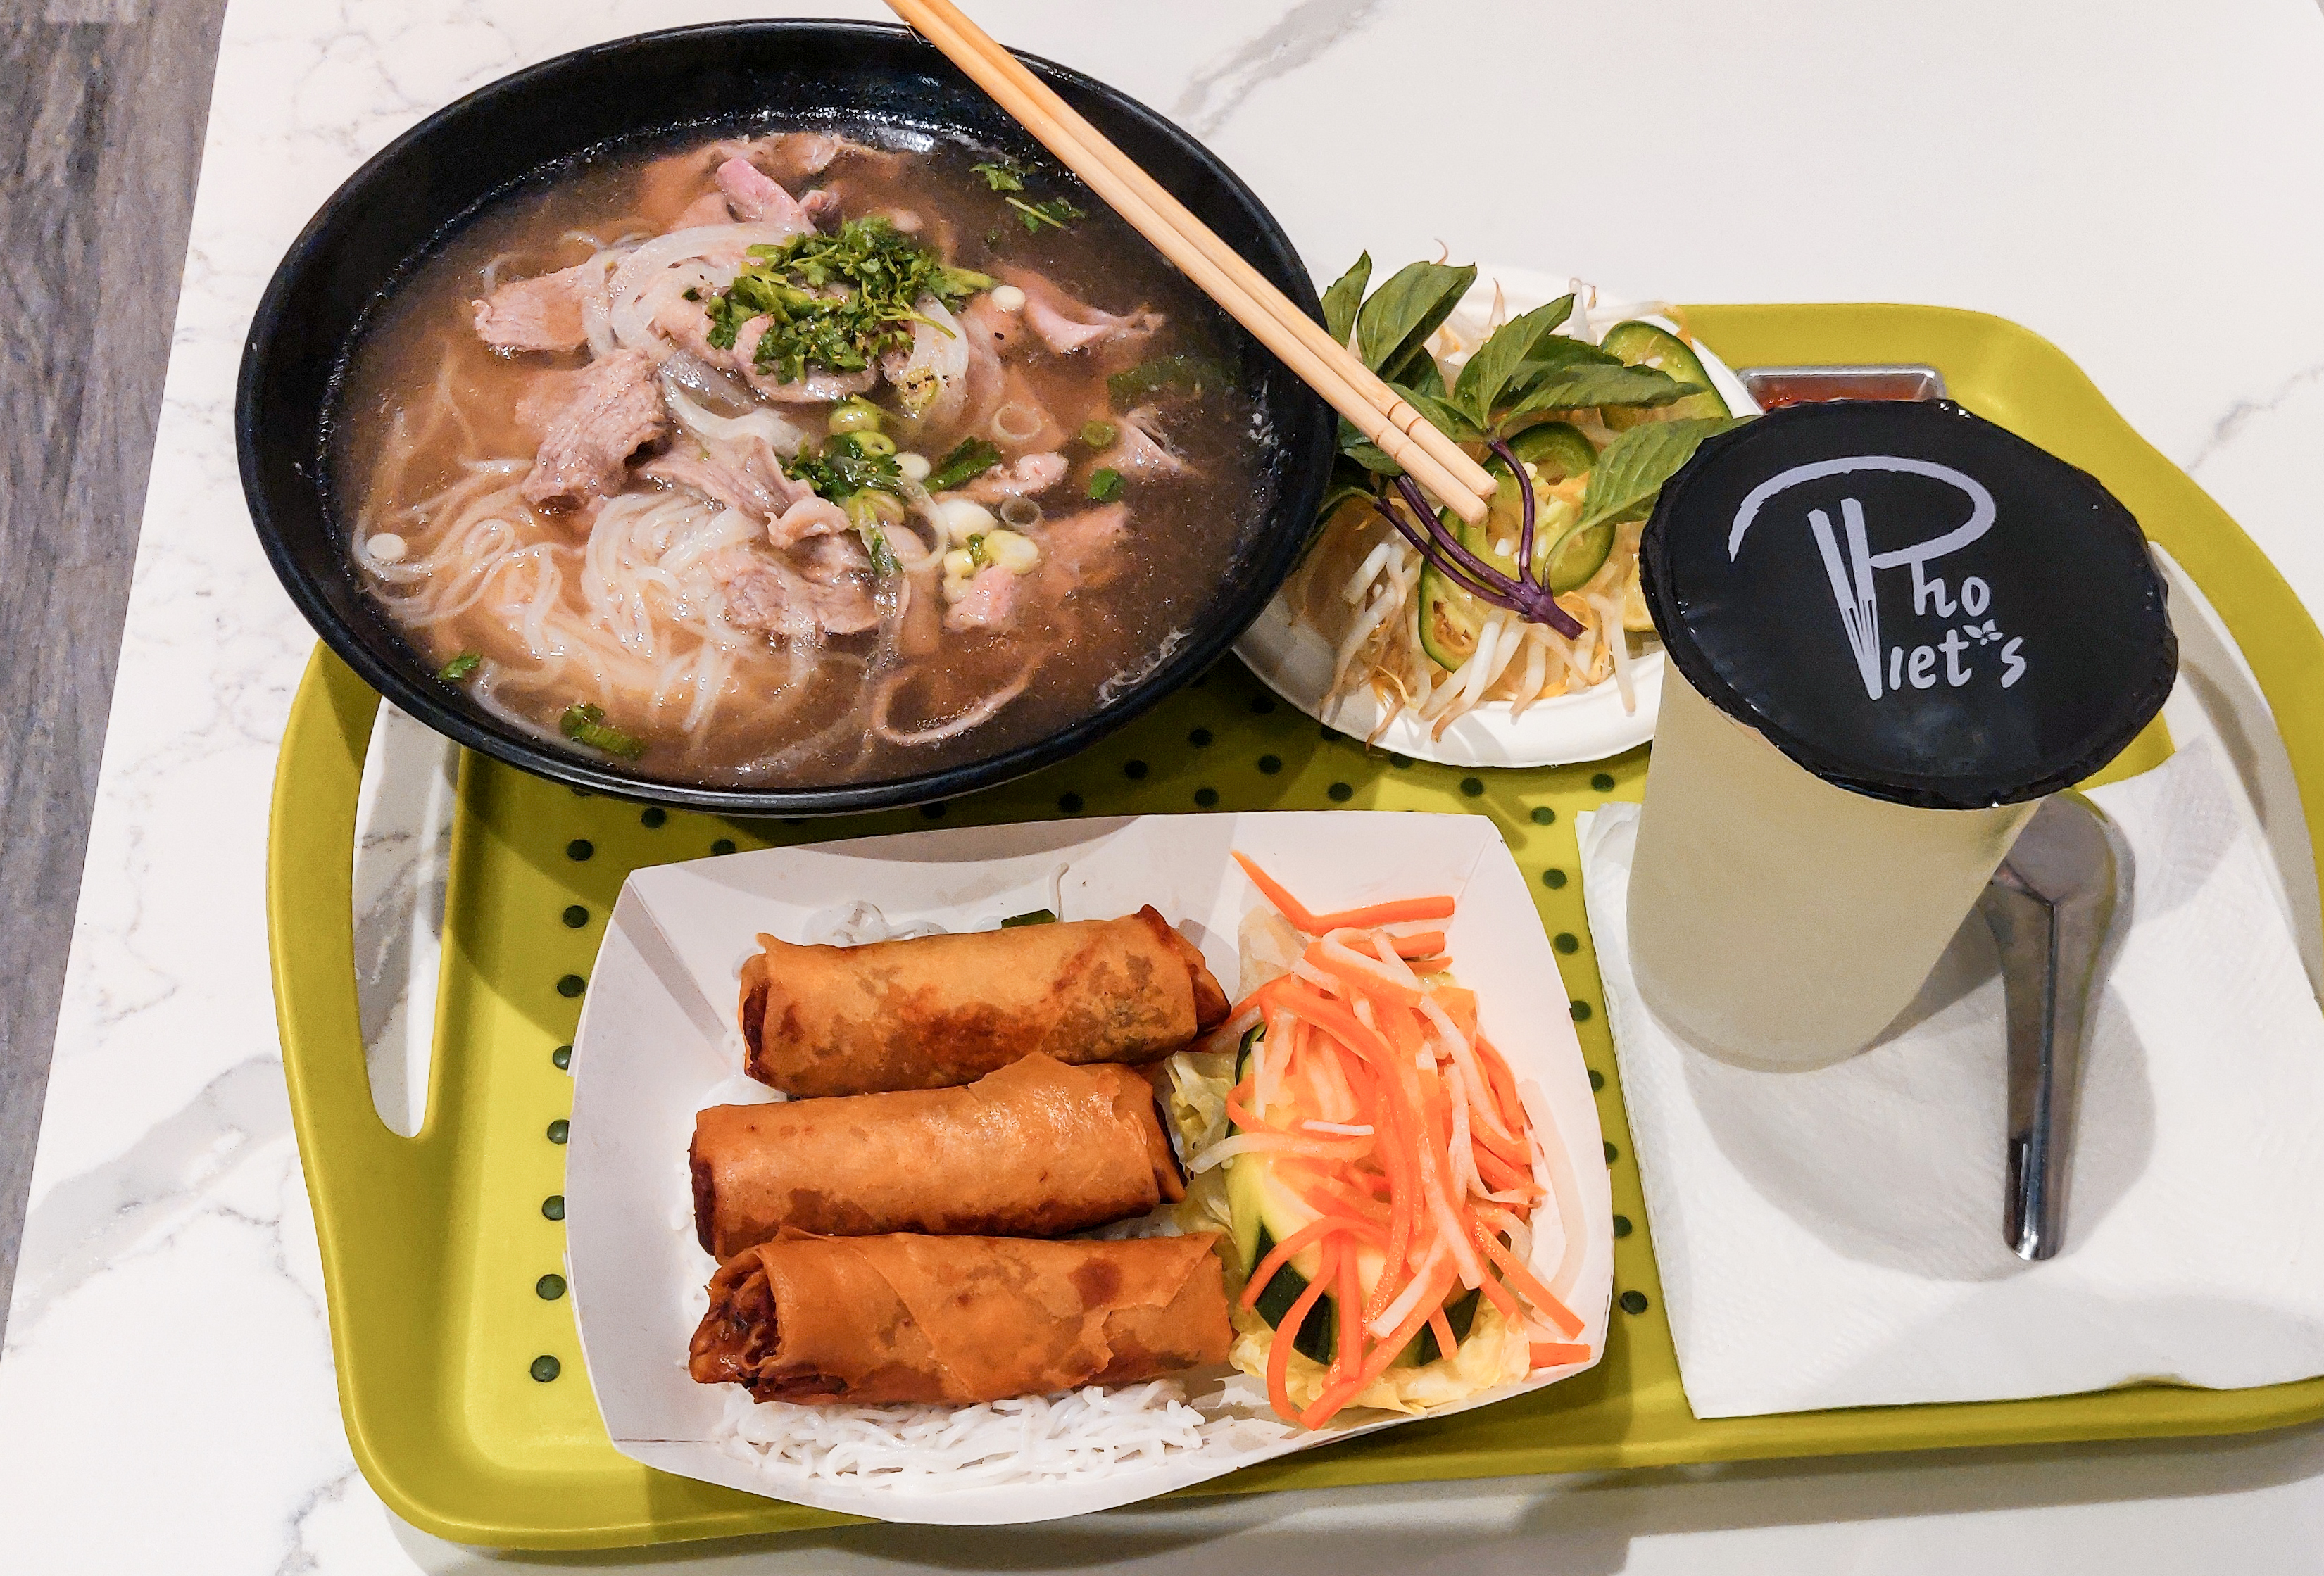 Vietnamese noodle soup, spring rolls, and a plastic cup of lemonade sit on a green tray on a white tabletop. The drink is covered with a black top branded with the logo of the restaurant, Pho Viet's.